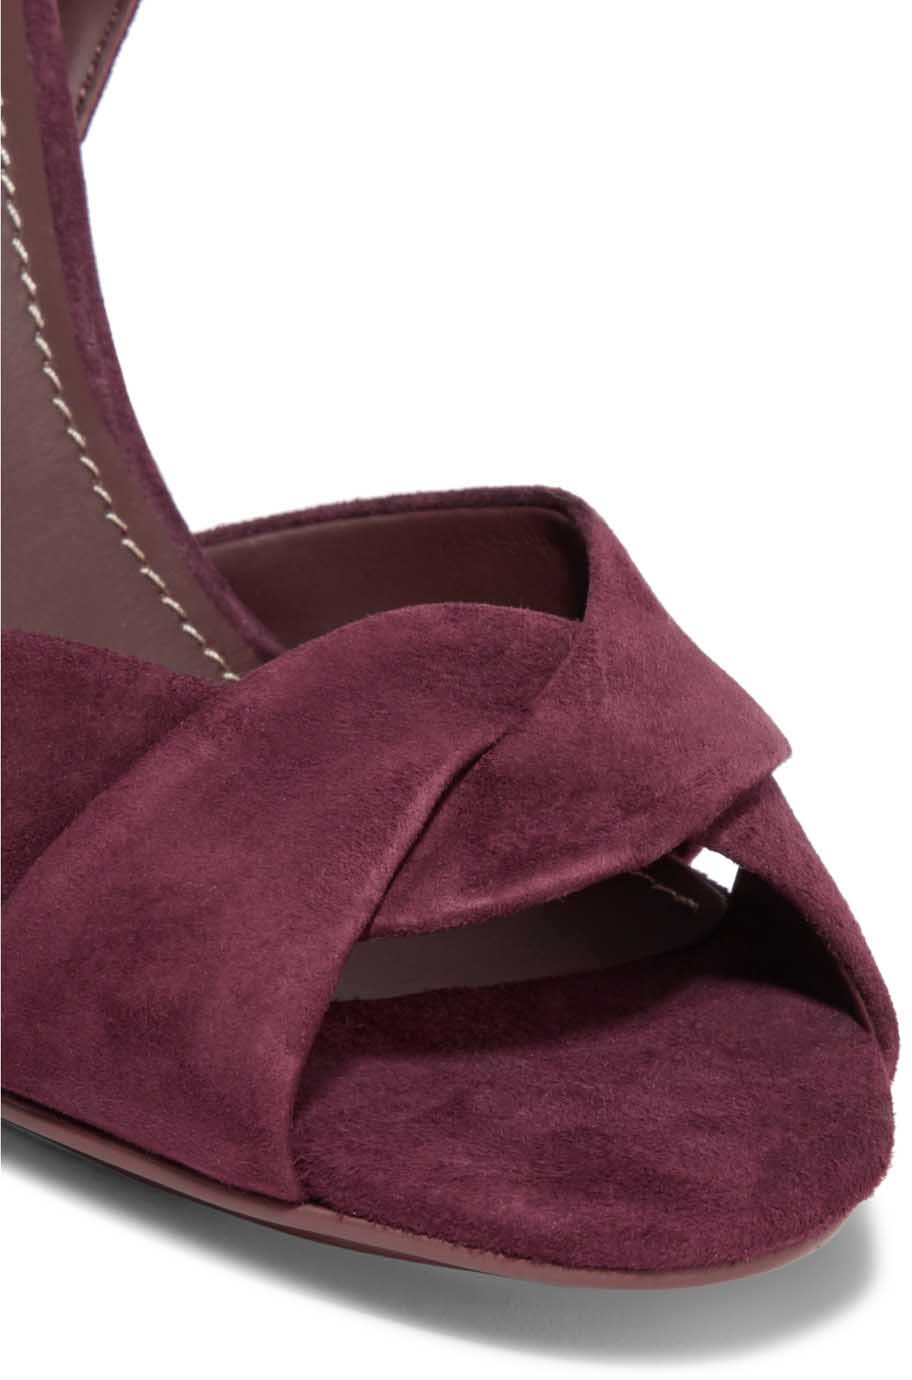 Chlo 233 Embroidered Suede Sandals Shoes Post